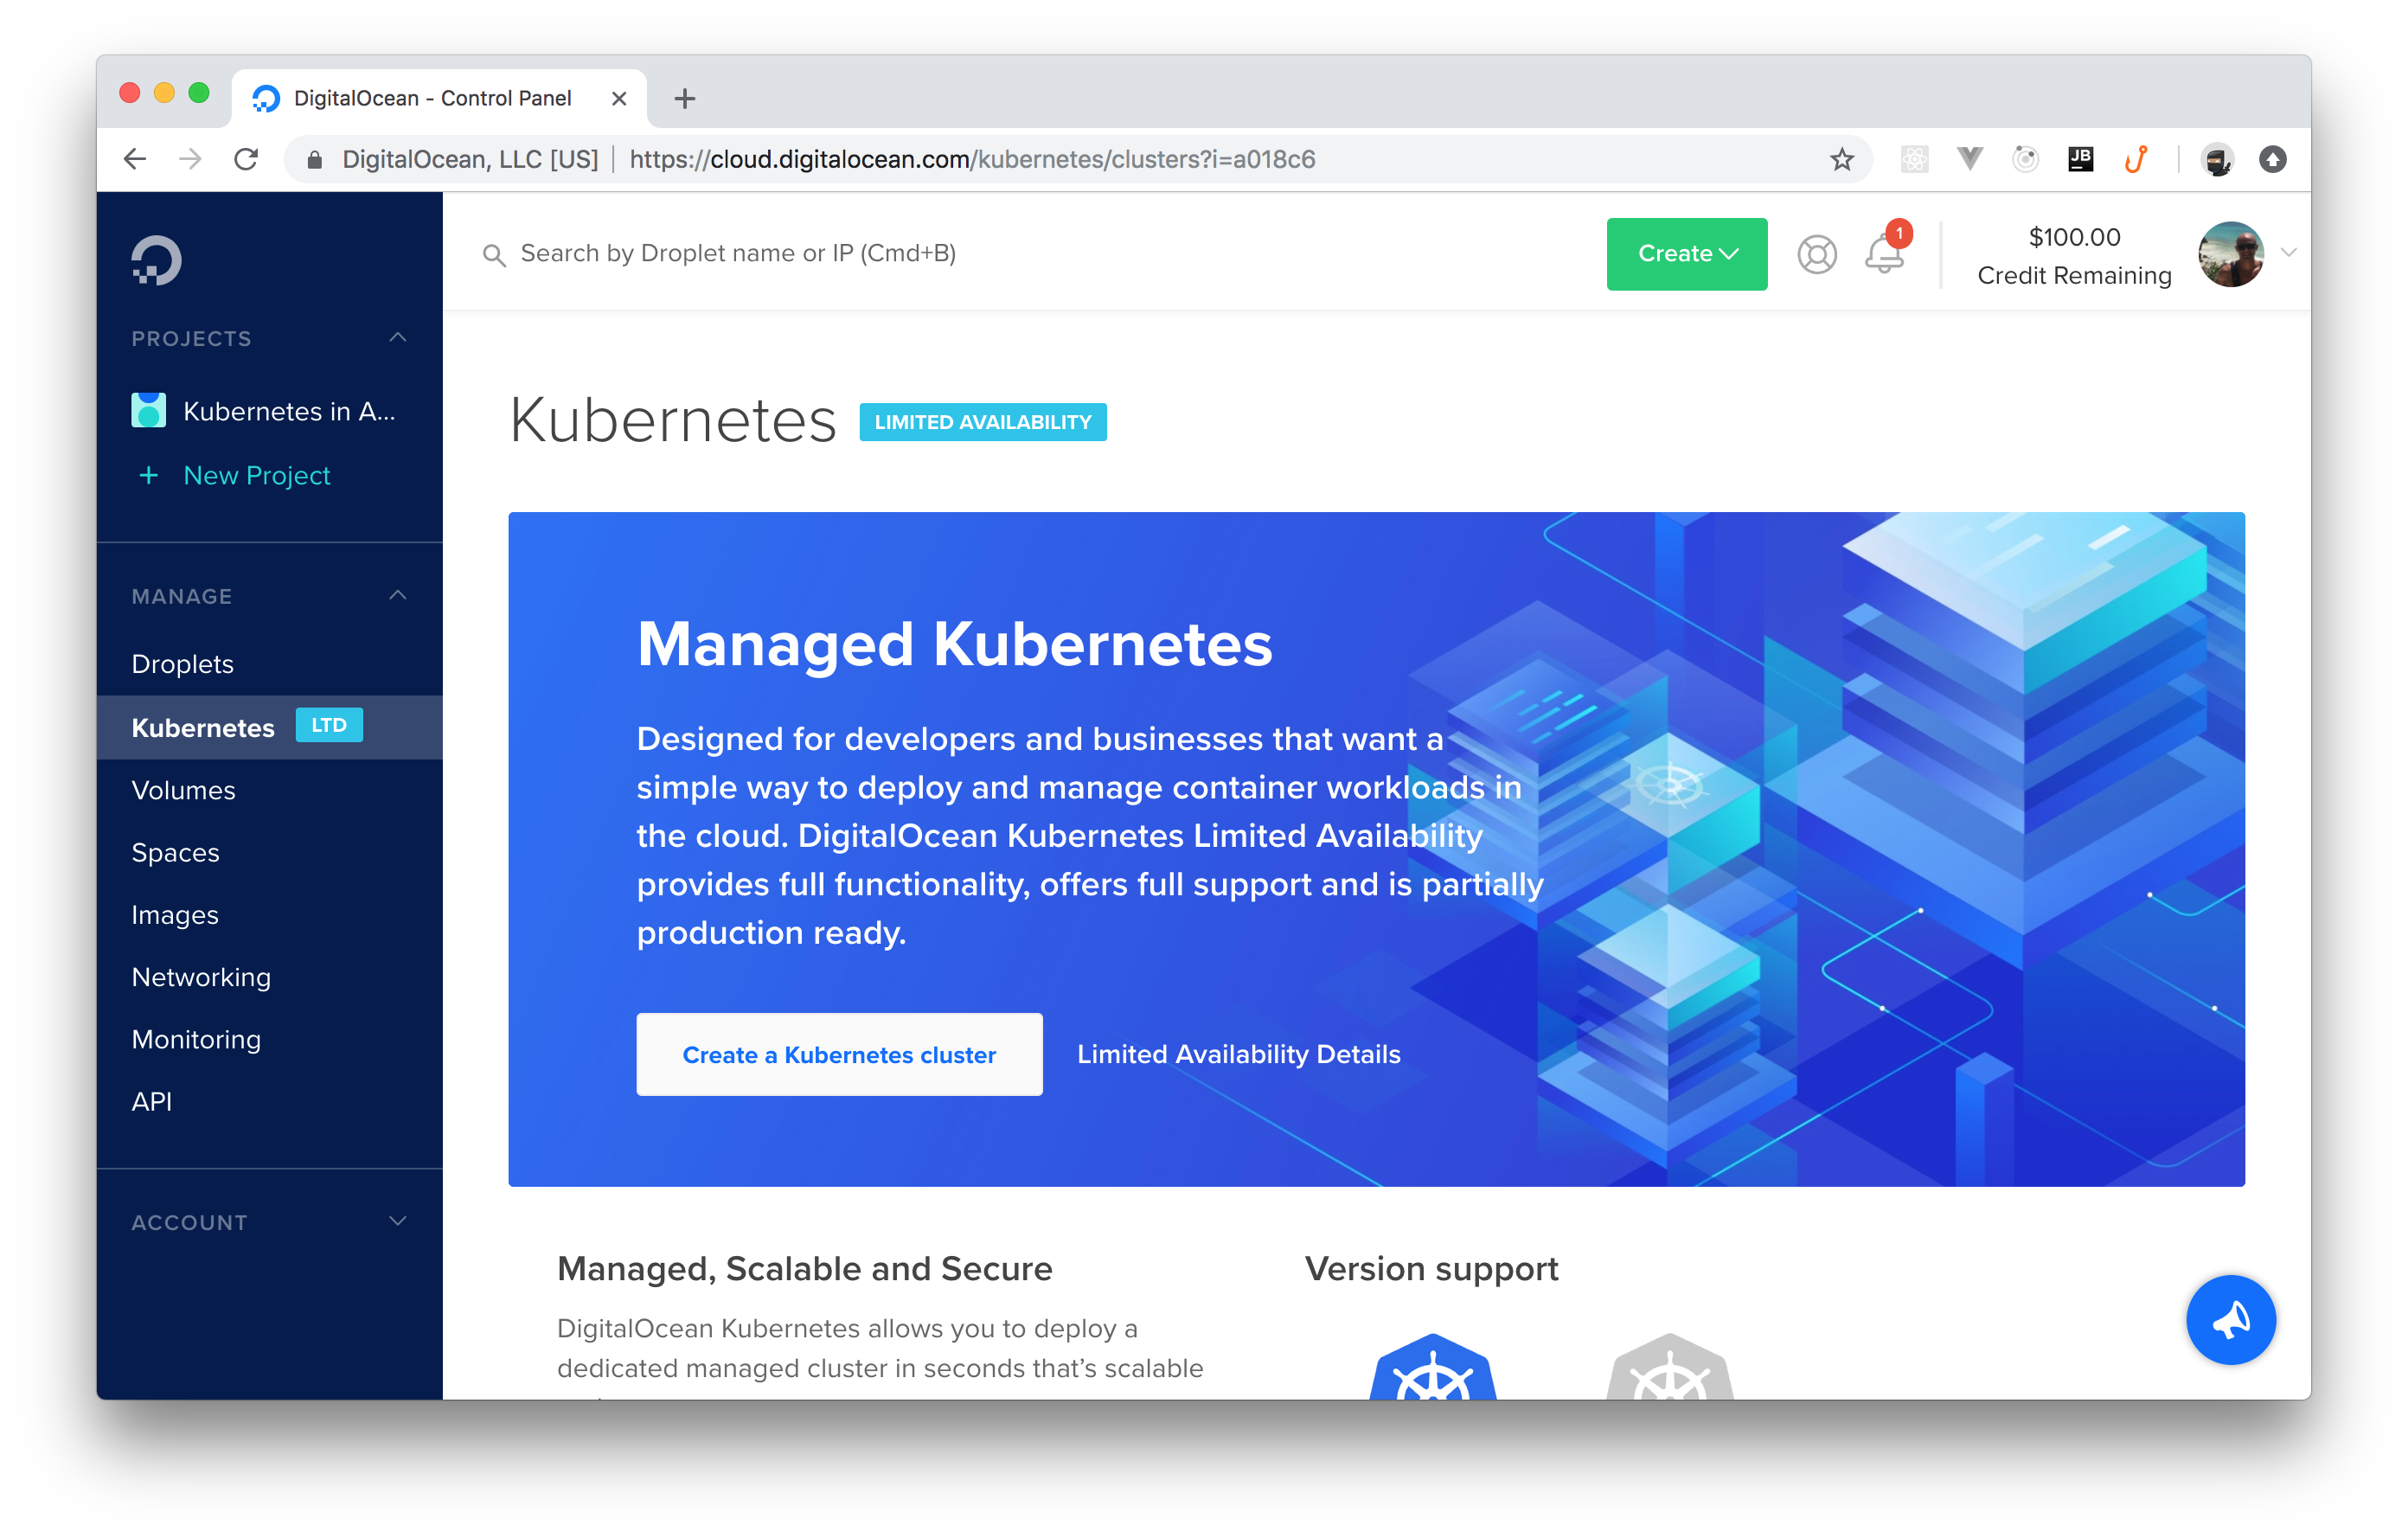 Kubernetes dashboard on DigitalOcean